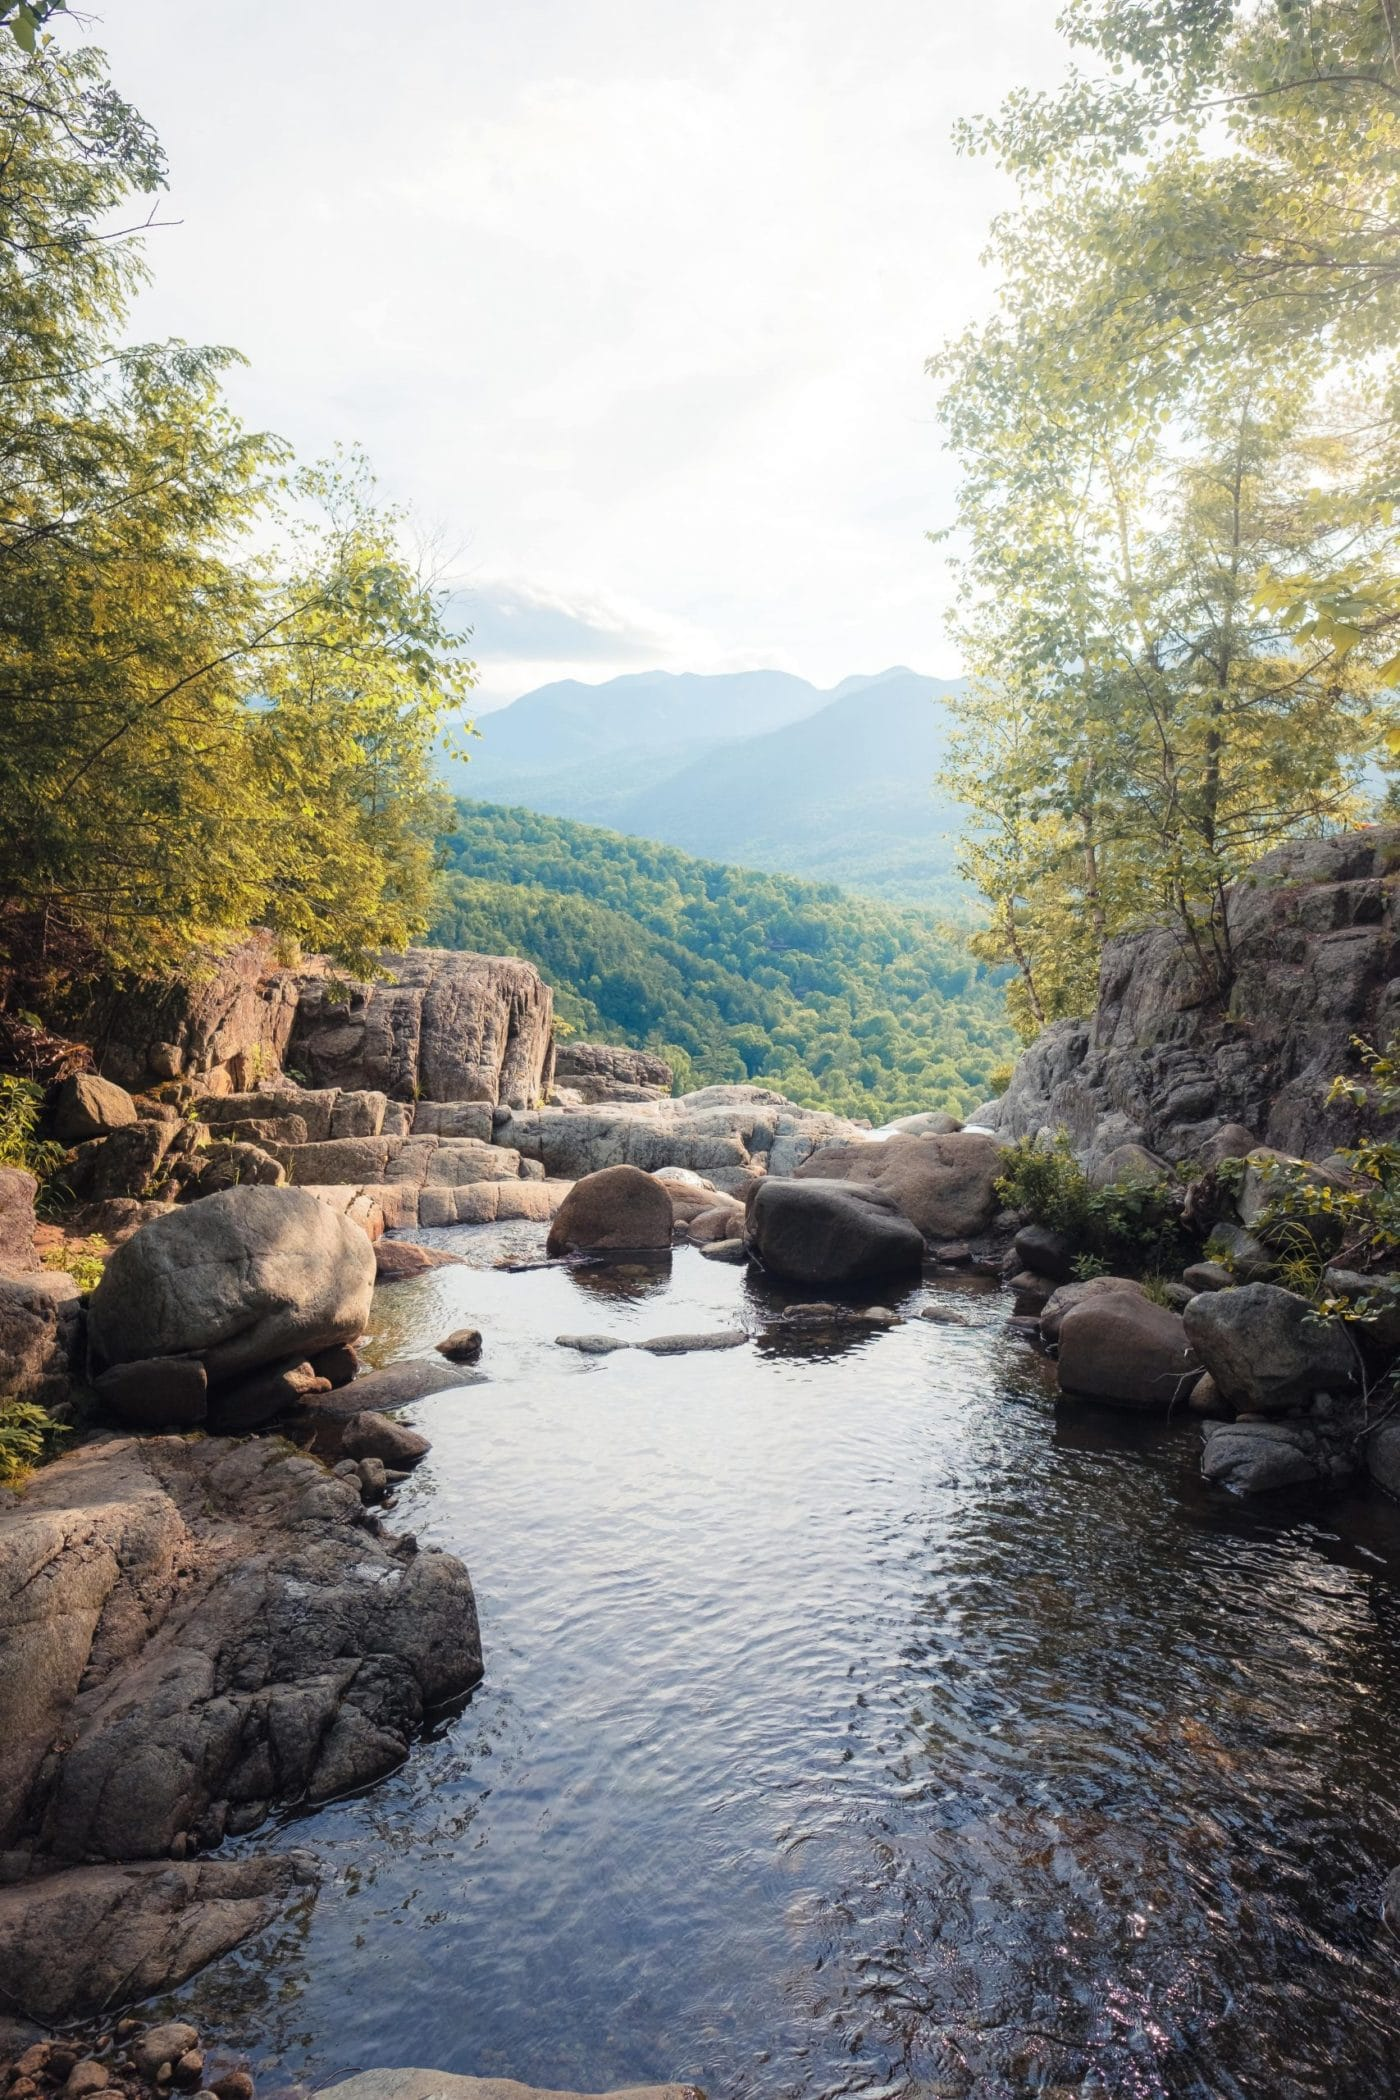 cold, freshwater river in the Adirondack Mountains